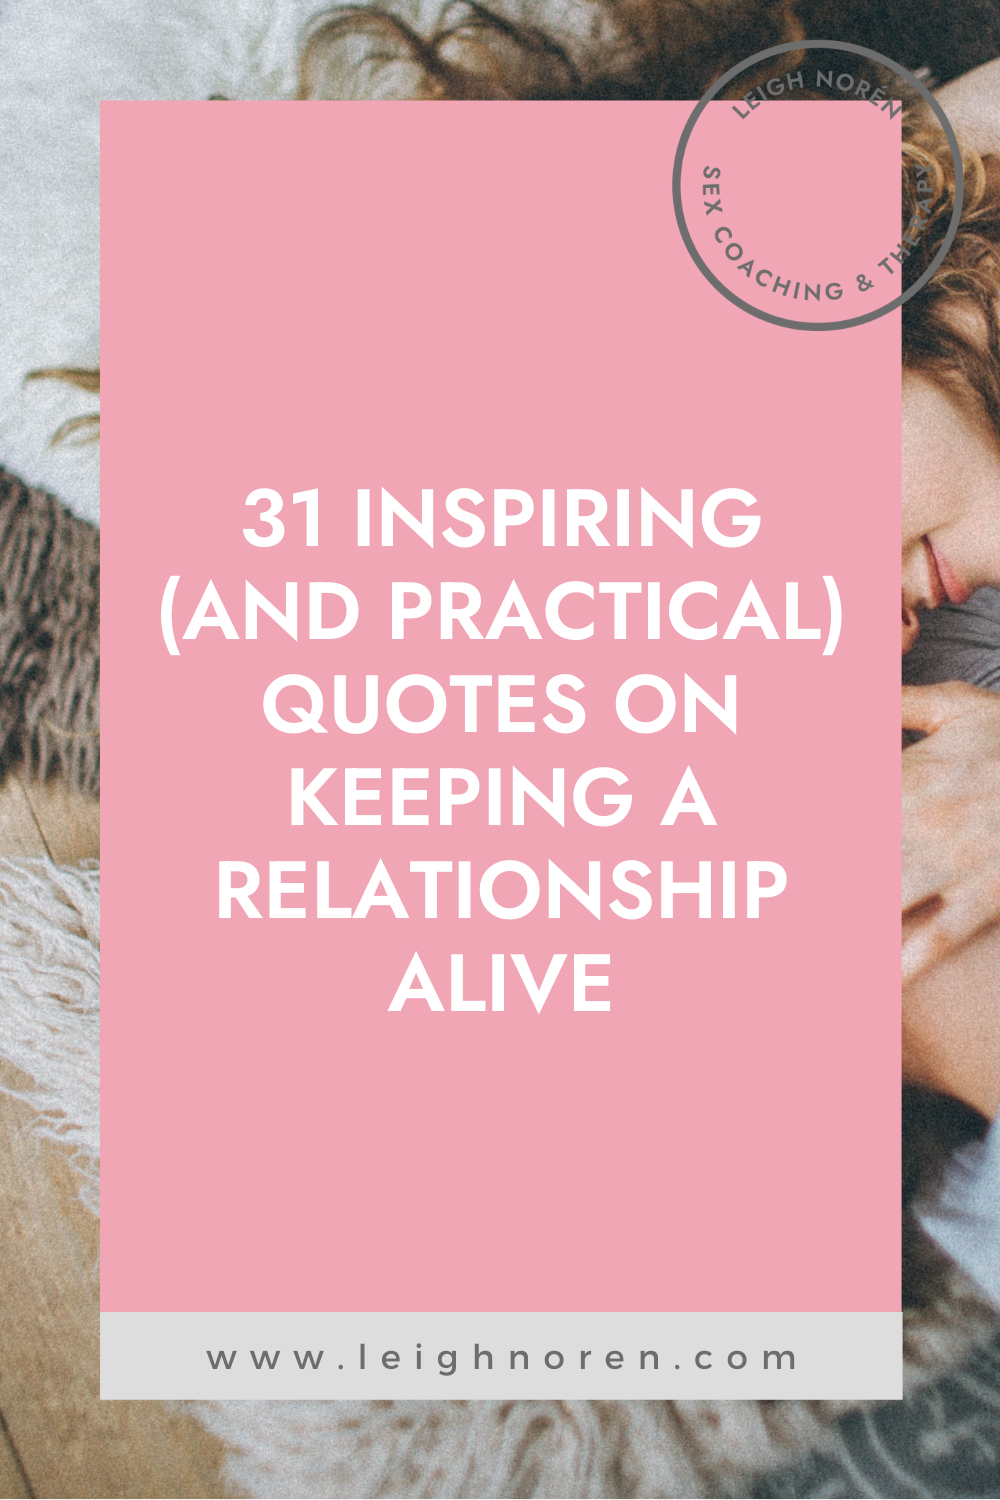 31 Inspiring (And Practical) Quotes On Keeping A Relationship Alive